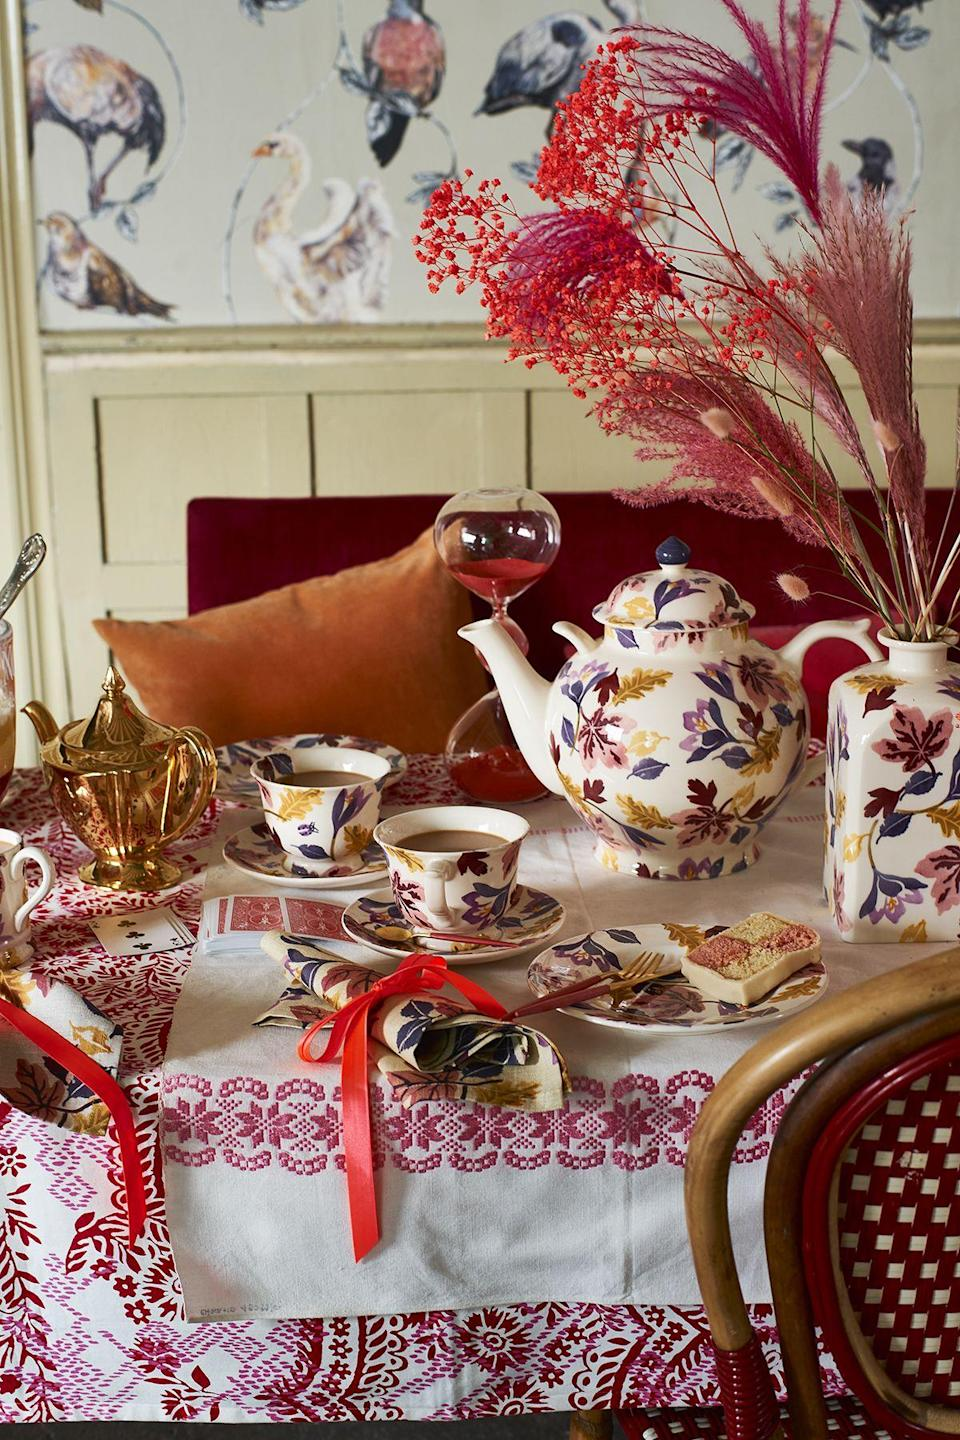 """<p><strong>Emma Bridgewater has just released its must-have <a href=""""https://www.housebeautiful.com/uk/garden/plants/a37370859/autumn-plants-chelsea-flower-show-garden/"""" rel=""""nofollow noopener"""" target=""""_blank"""" data-ylk=""""slk:autumn"""" class=""""link rapid-noclick-resp"""">autumn</a> 2021 collection — and we'll take one of everything. Whether you're on the hunt for some gorgeous new mugs, plates or bowls, there is plenty to choose from.</strong></p><p>The famous British pottery brand, which is designed and manufactured in Stoke-on-Trent, is giving homeware fans a real treat with plenty of new designs. Take a look at some of our favourites below. Happy shopping!</p>"""